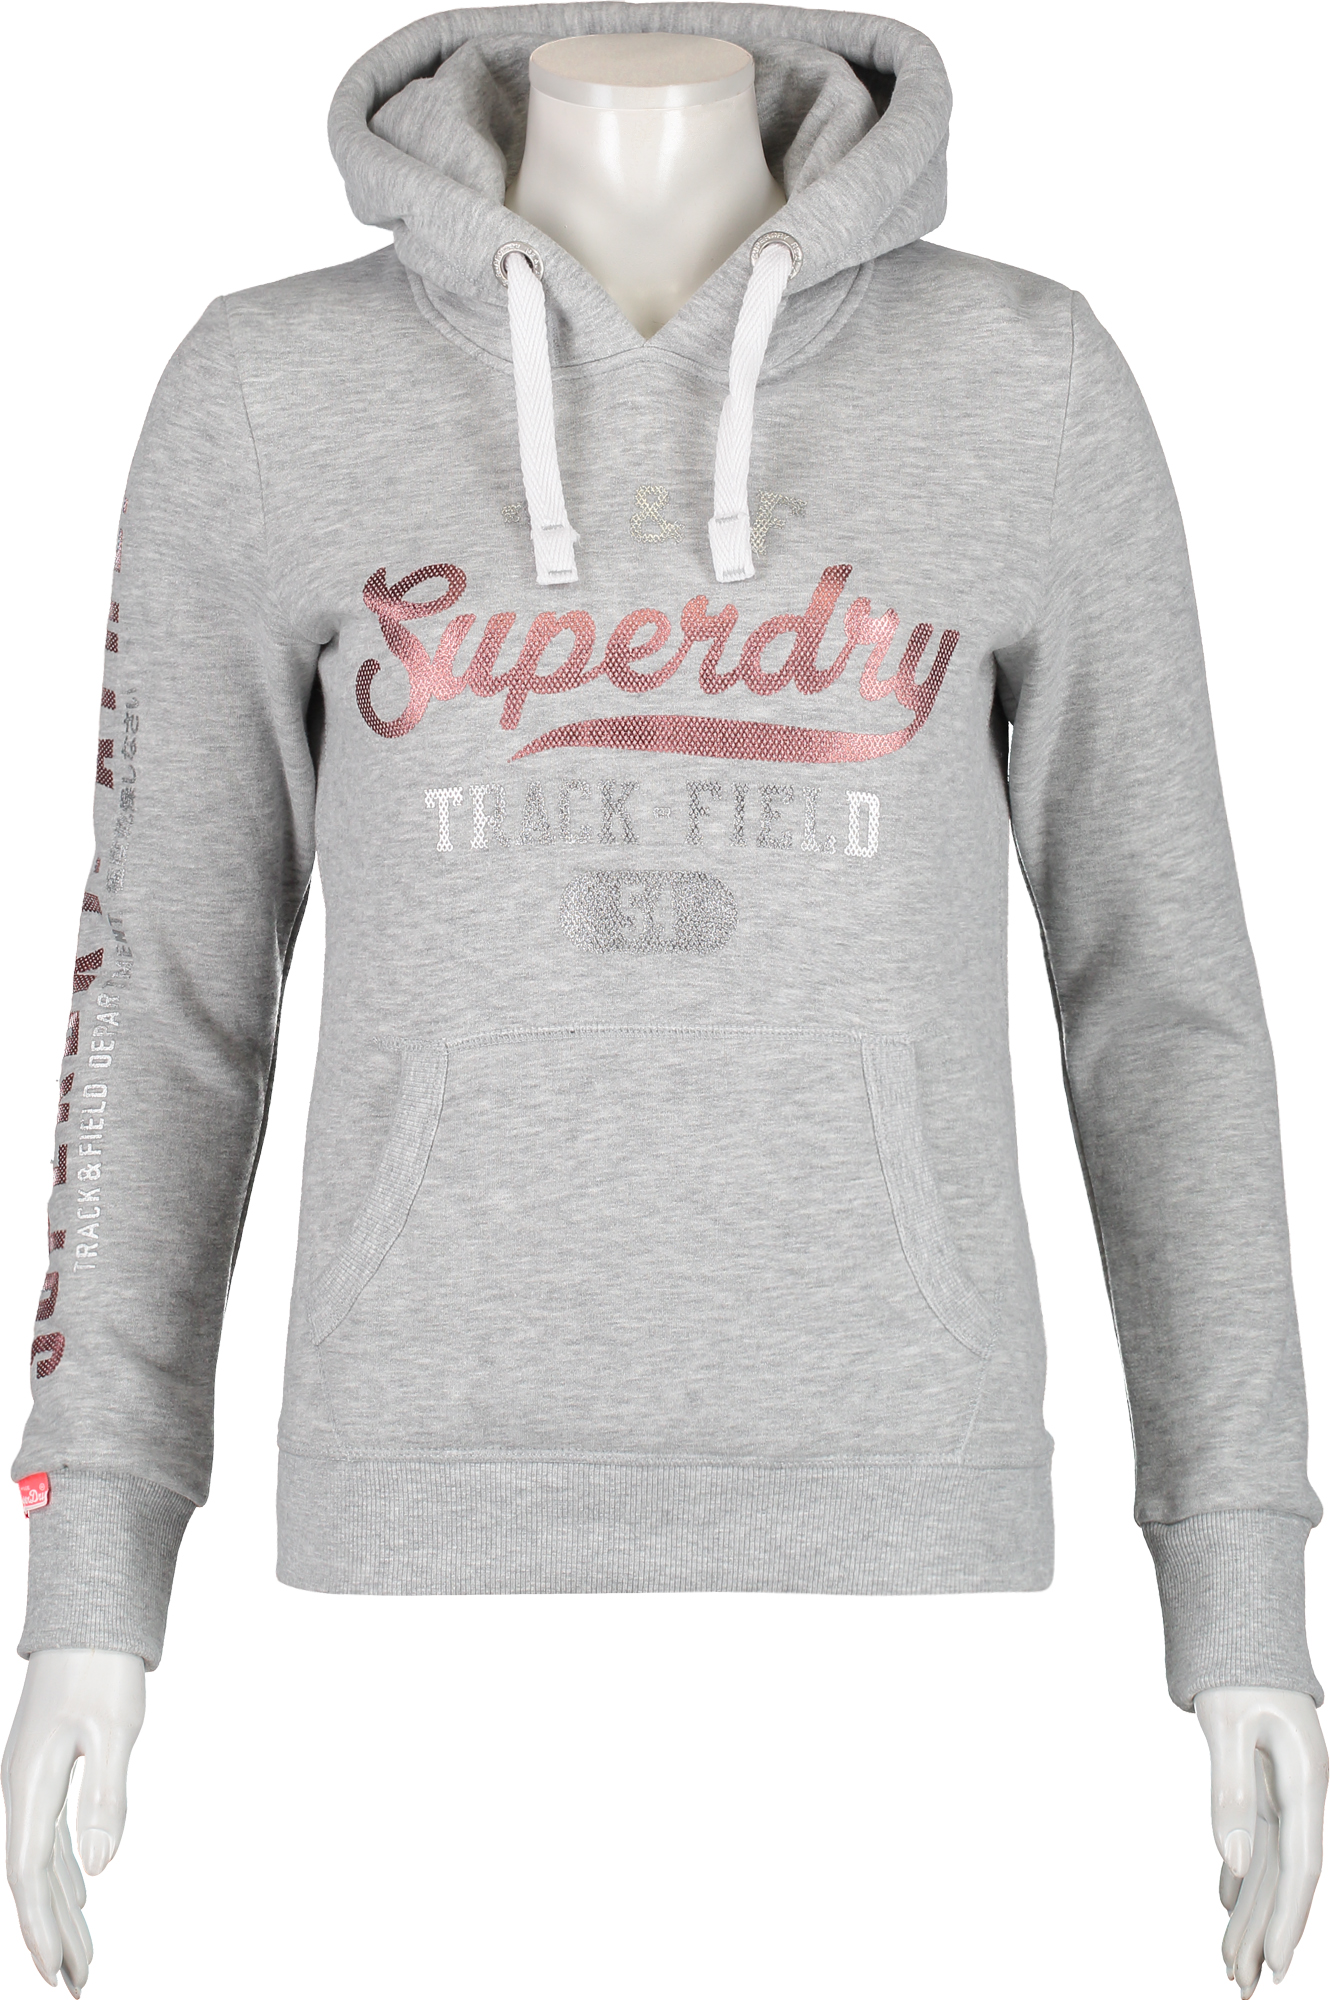 Piet Zoomers Superdry dames sweater